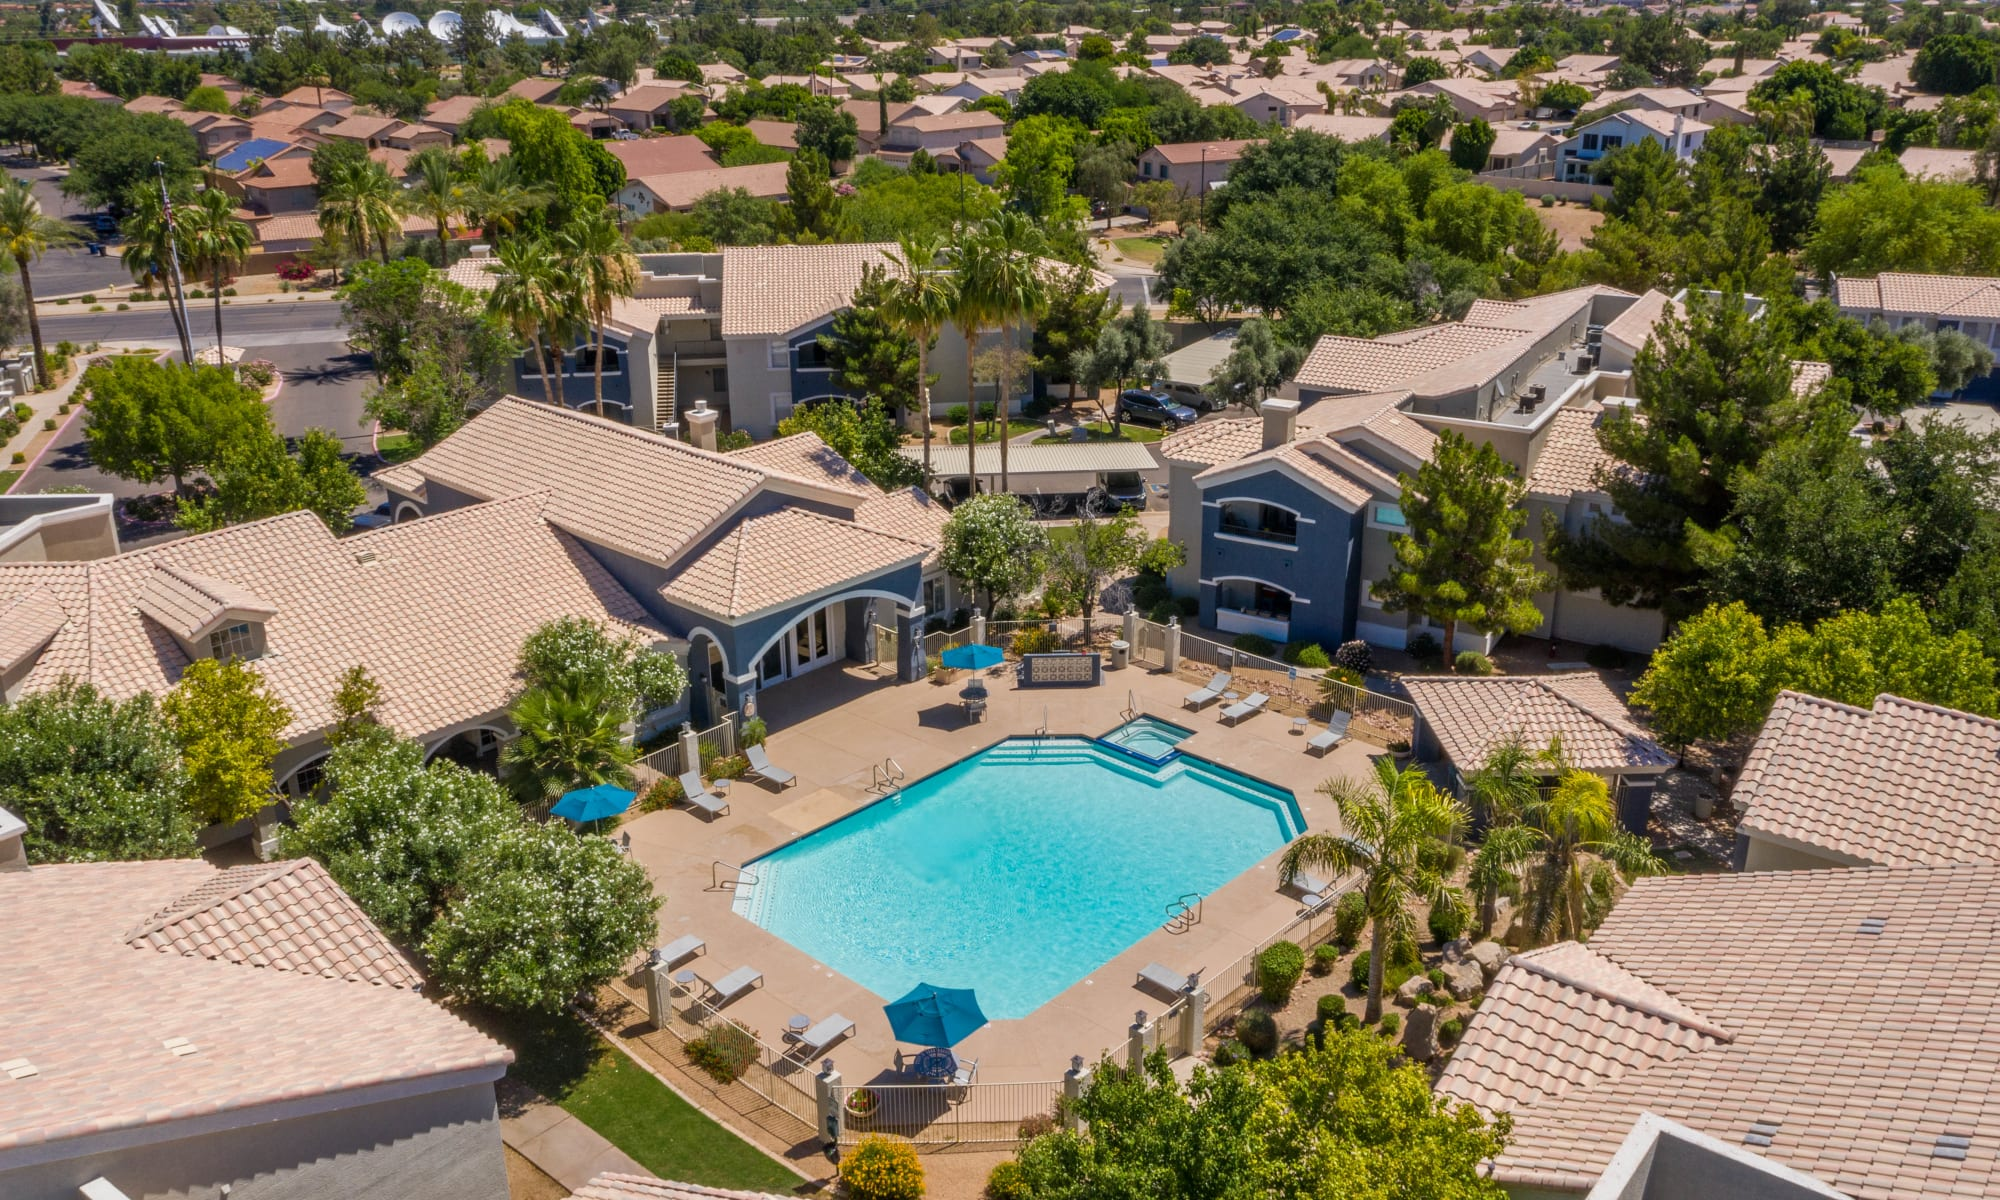 Apartments at The Sterling in Gilbert, Arizona